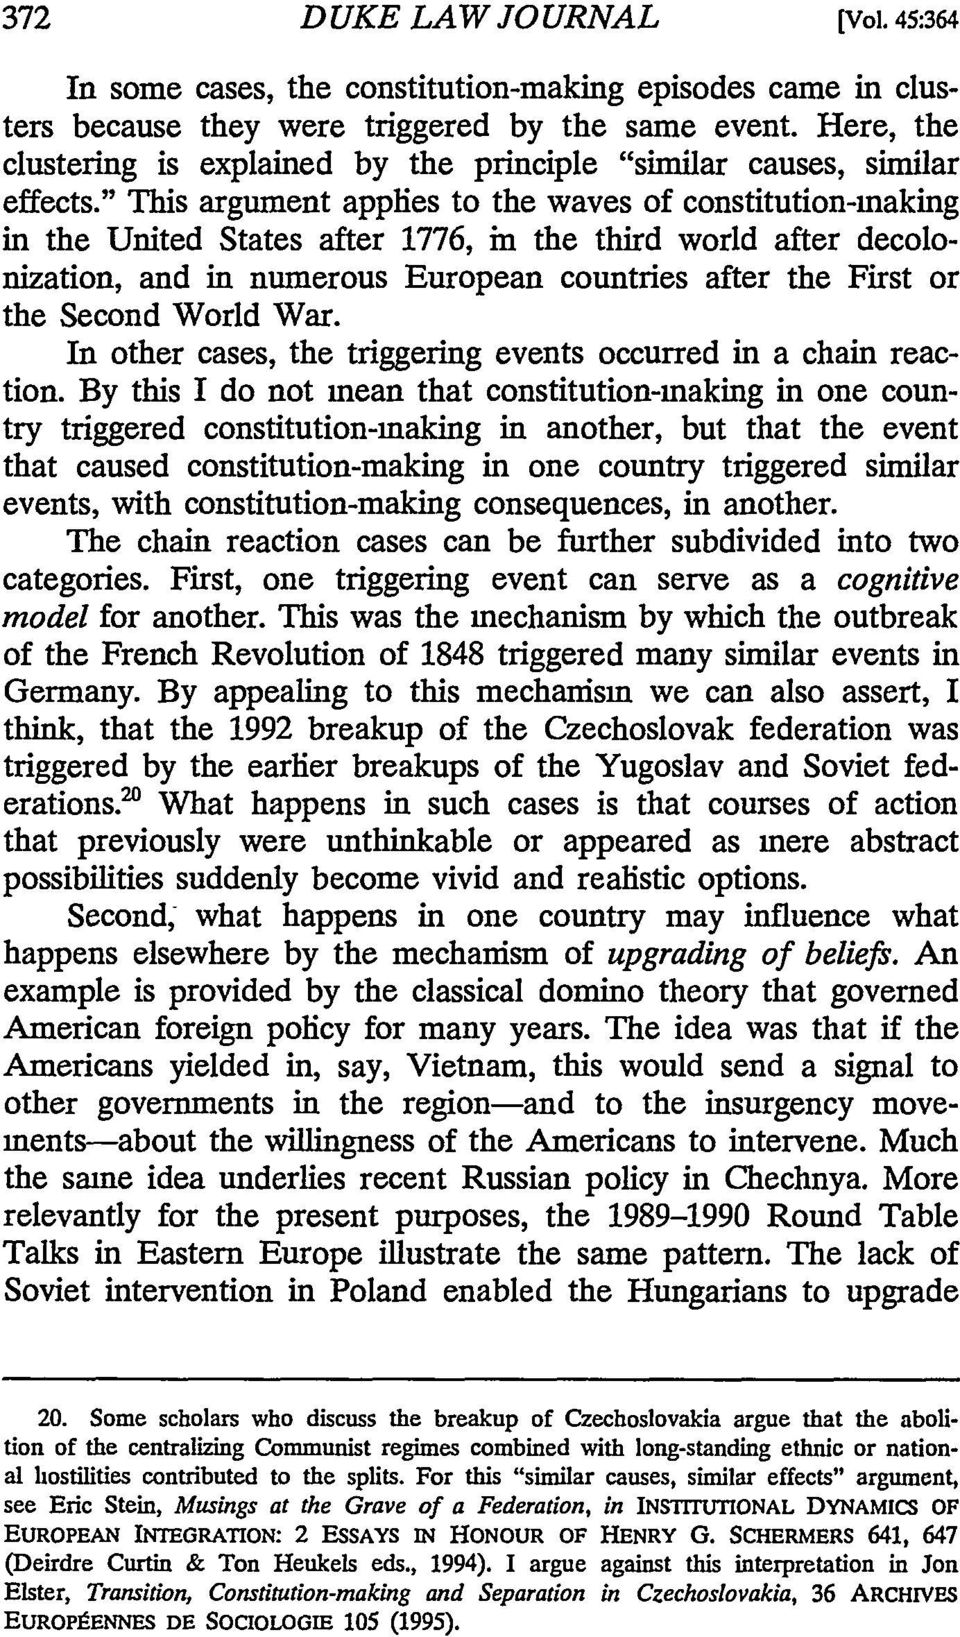 """ This argument applies to the waves of constitution-making in the United States after 1776, in the third world after decolonization, and in numerous European countries after the First or the Second"